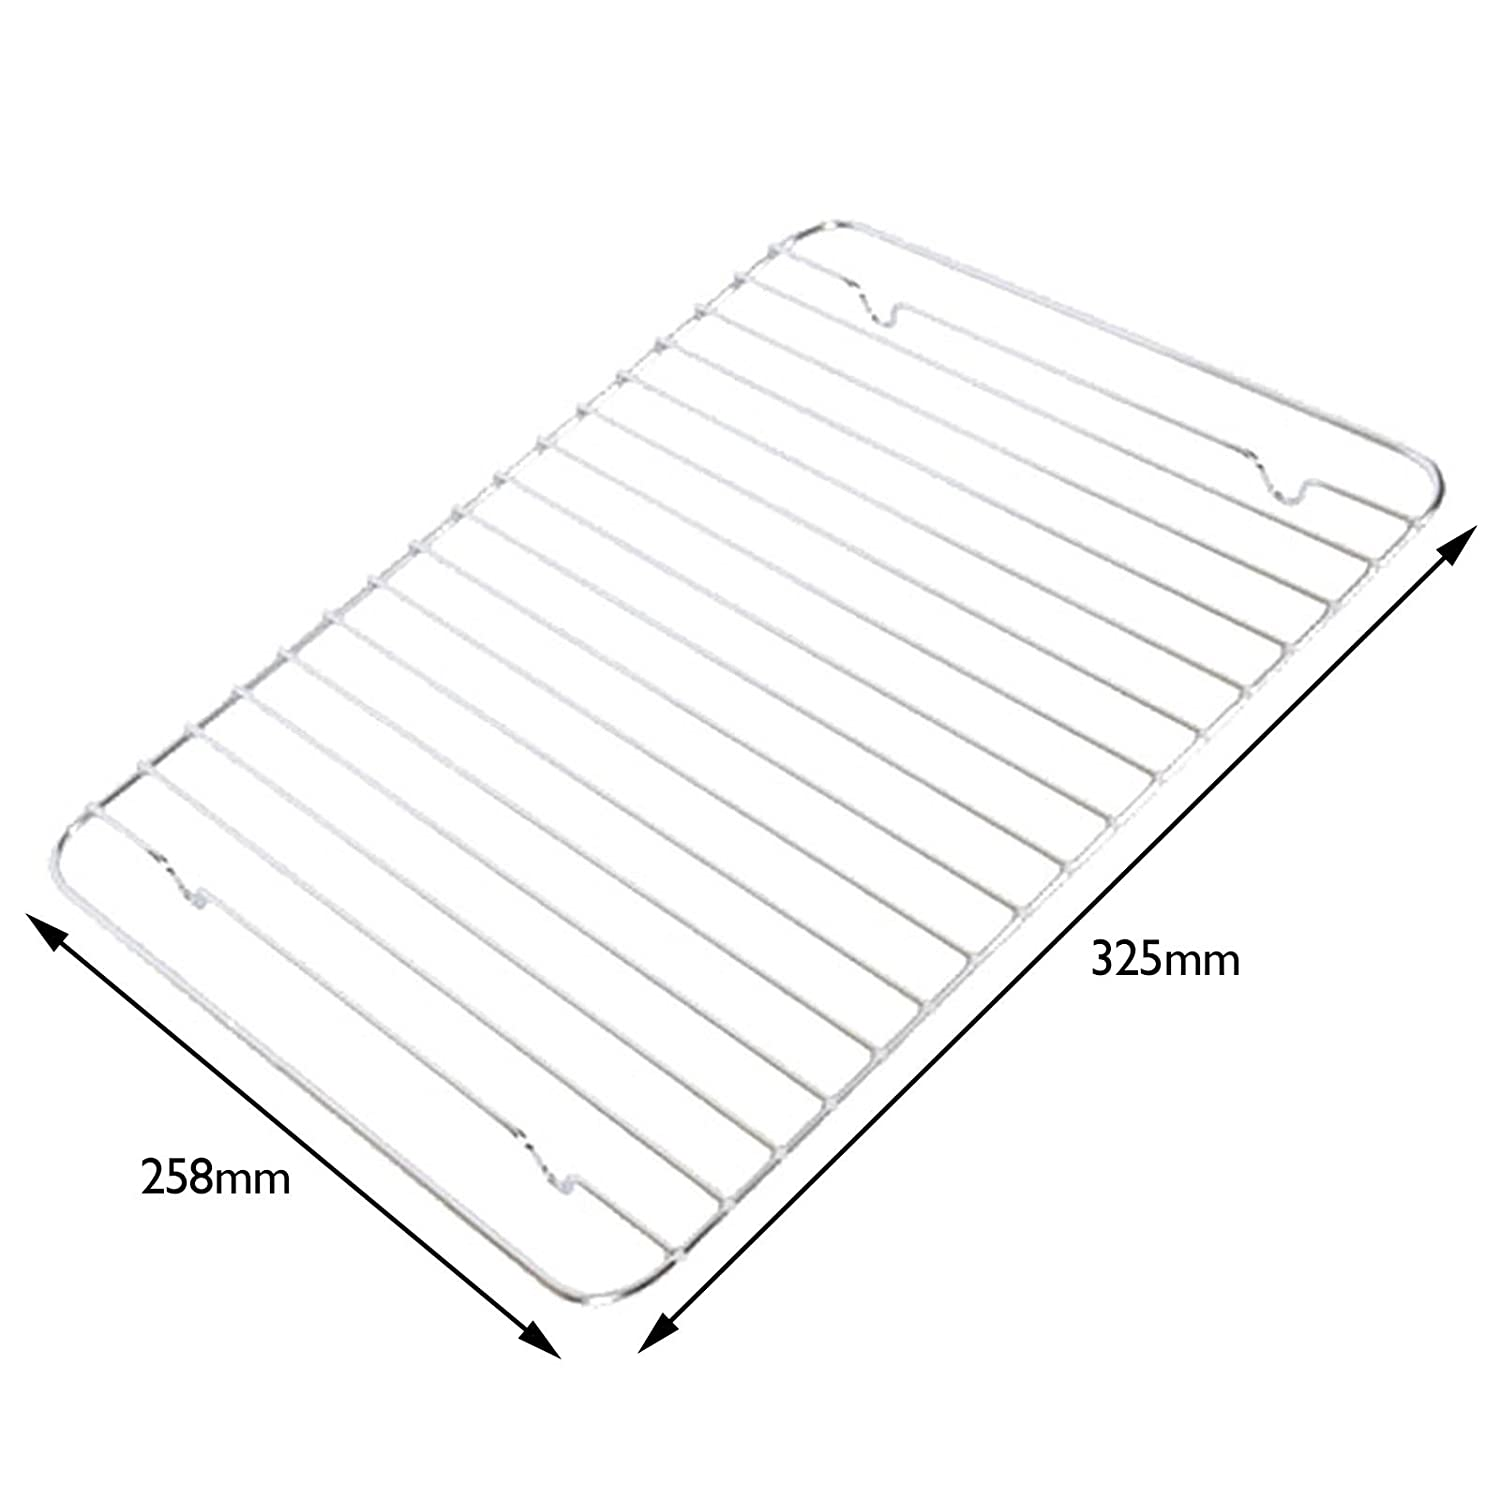 SPARES2GO Grill Pan Rack Grid Mesh for Montpellier (325 x 258 mm)